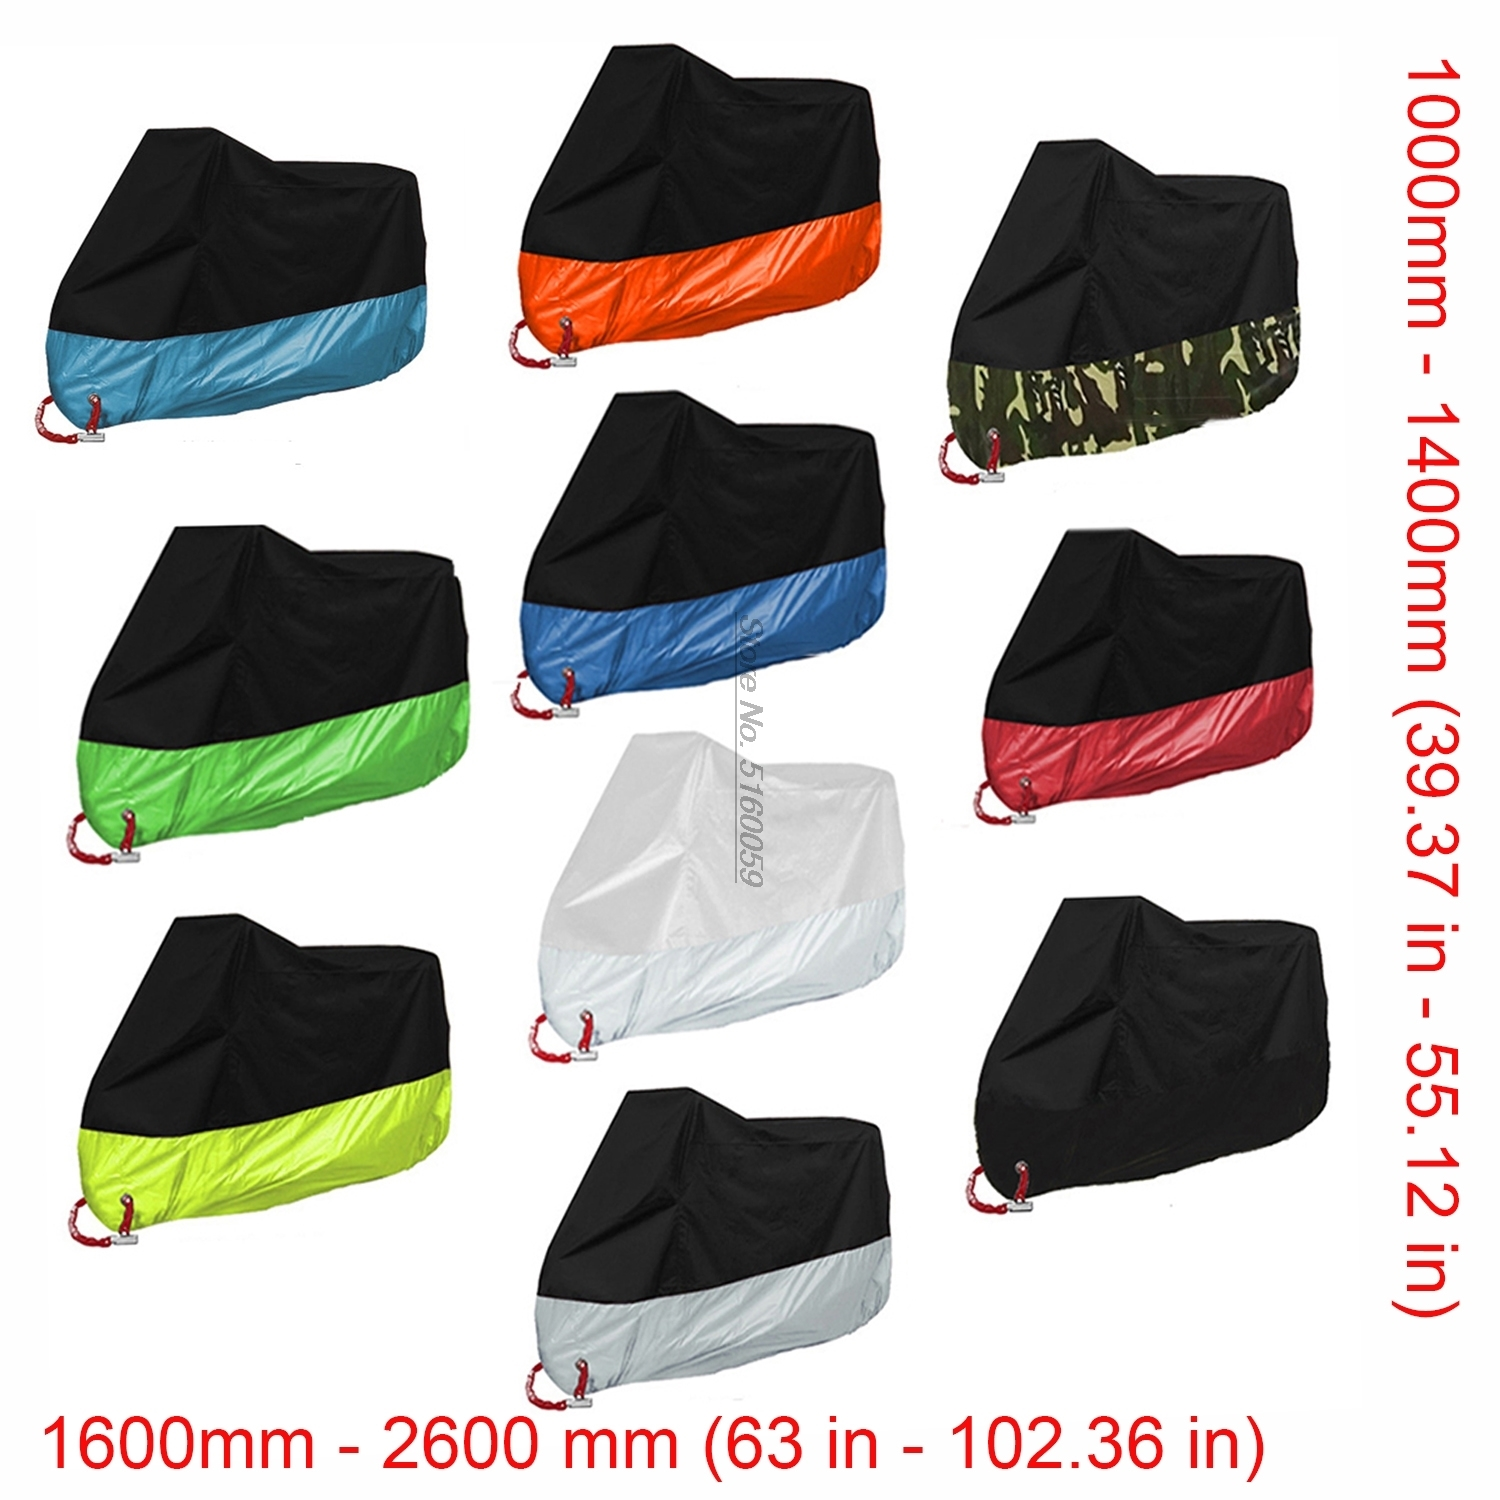 UV-Anti Motorcycle Covers for 700 <font><b>Yamaha</b></font> <font><b>Xj600</b></font> Honda Goldwing 1800 Tiger 800 Suzuki Hayabusa <font><b>Parts</b></font> Honda Cb1300 Kawasaki image